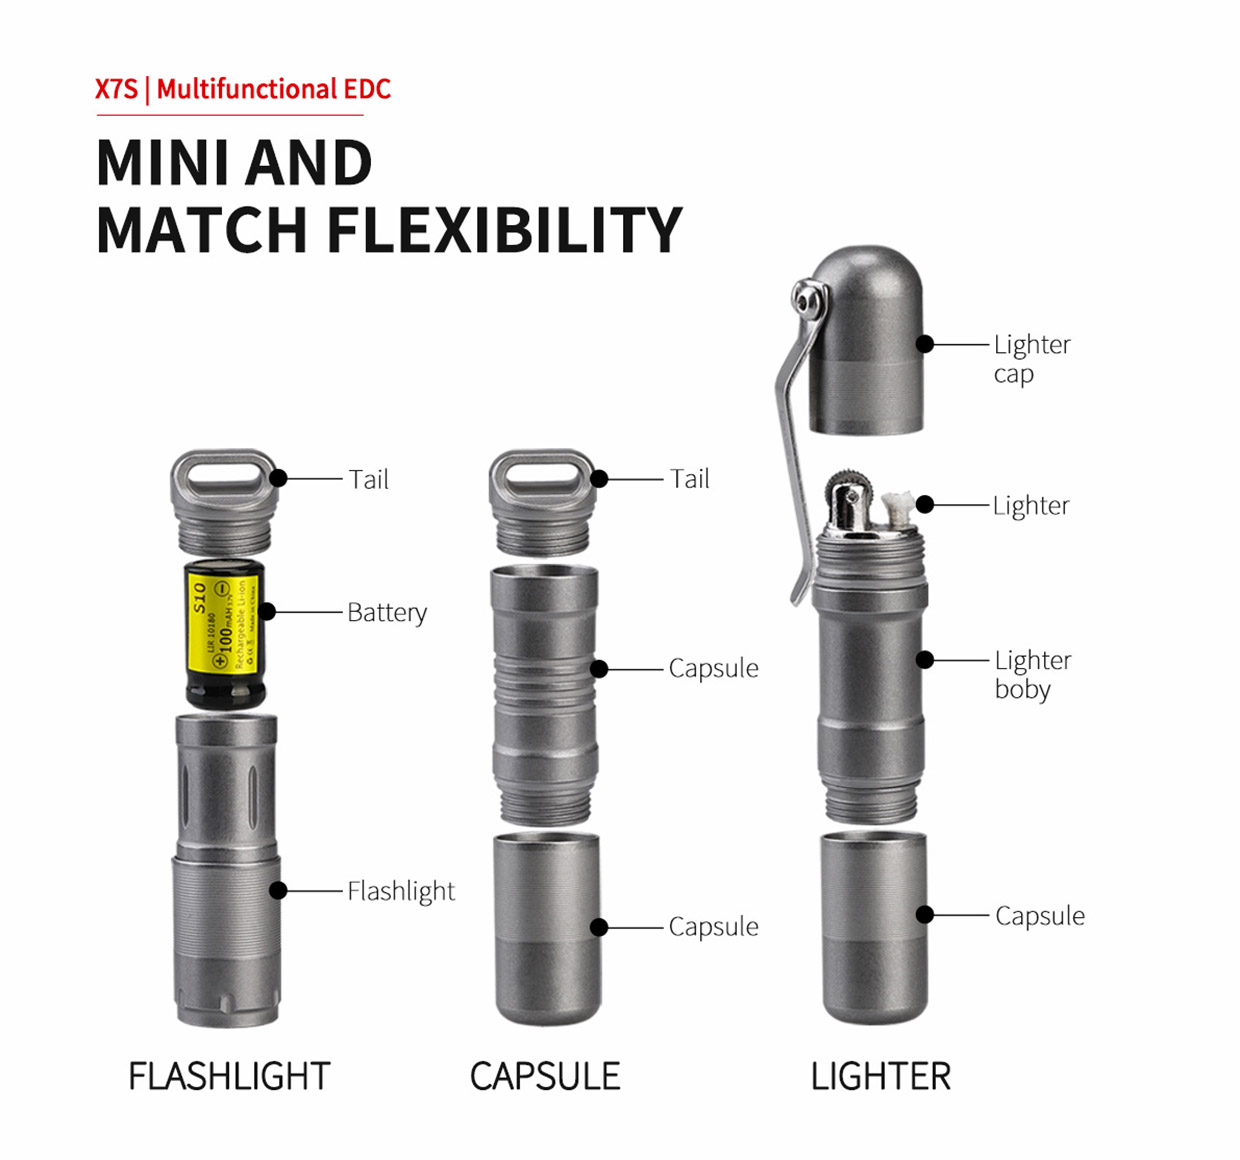 MecArmy X7S Flashlight & Lighter